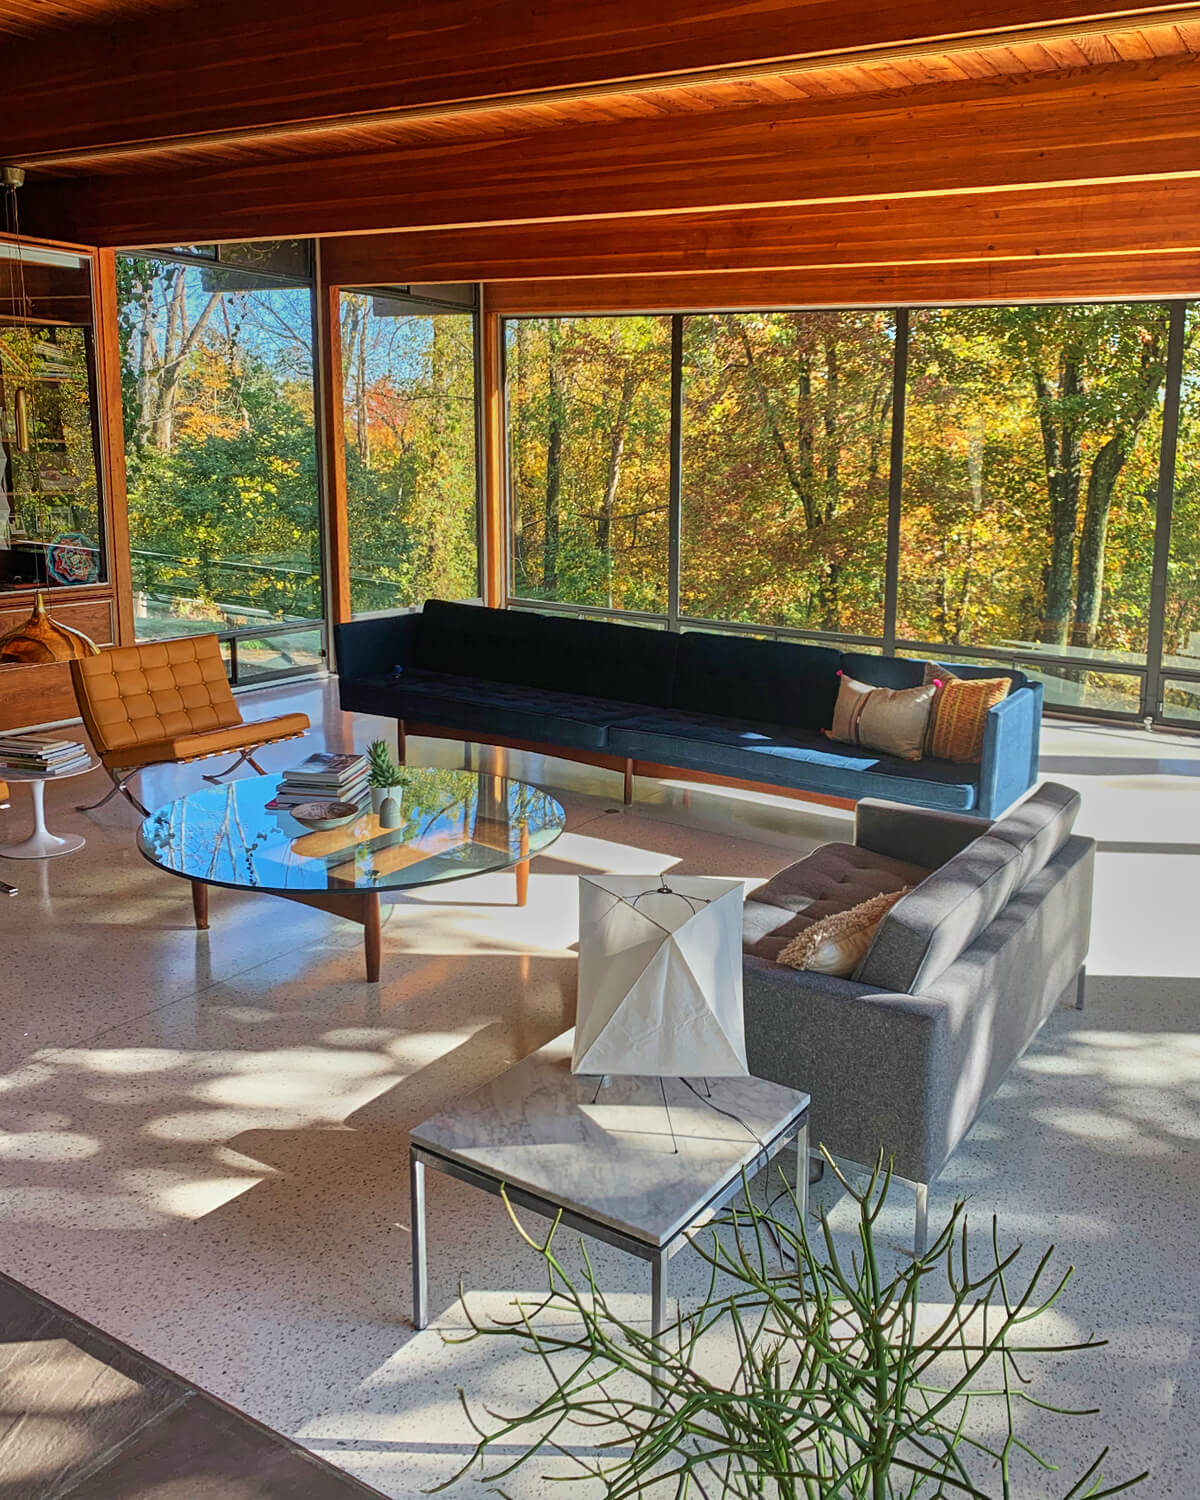 Gerald Luss House - Ossining, New York, United States | holiday homes, holiday rentals